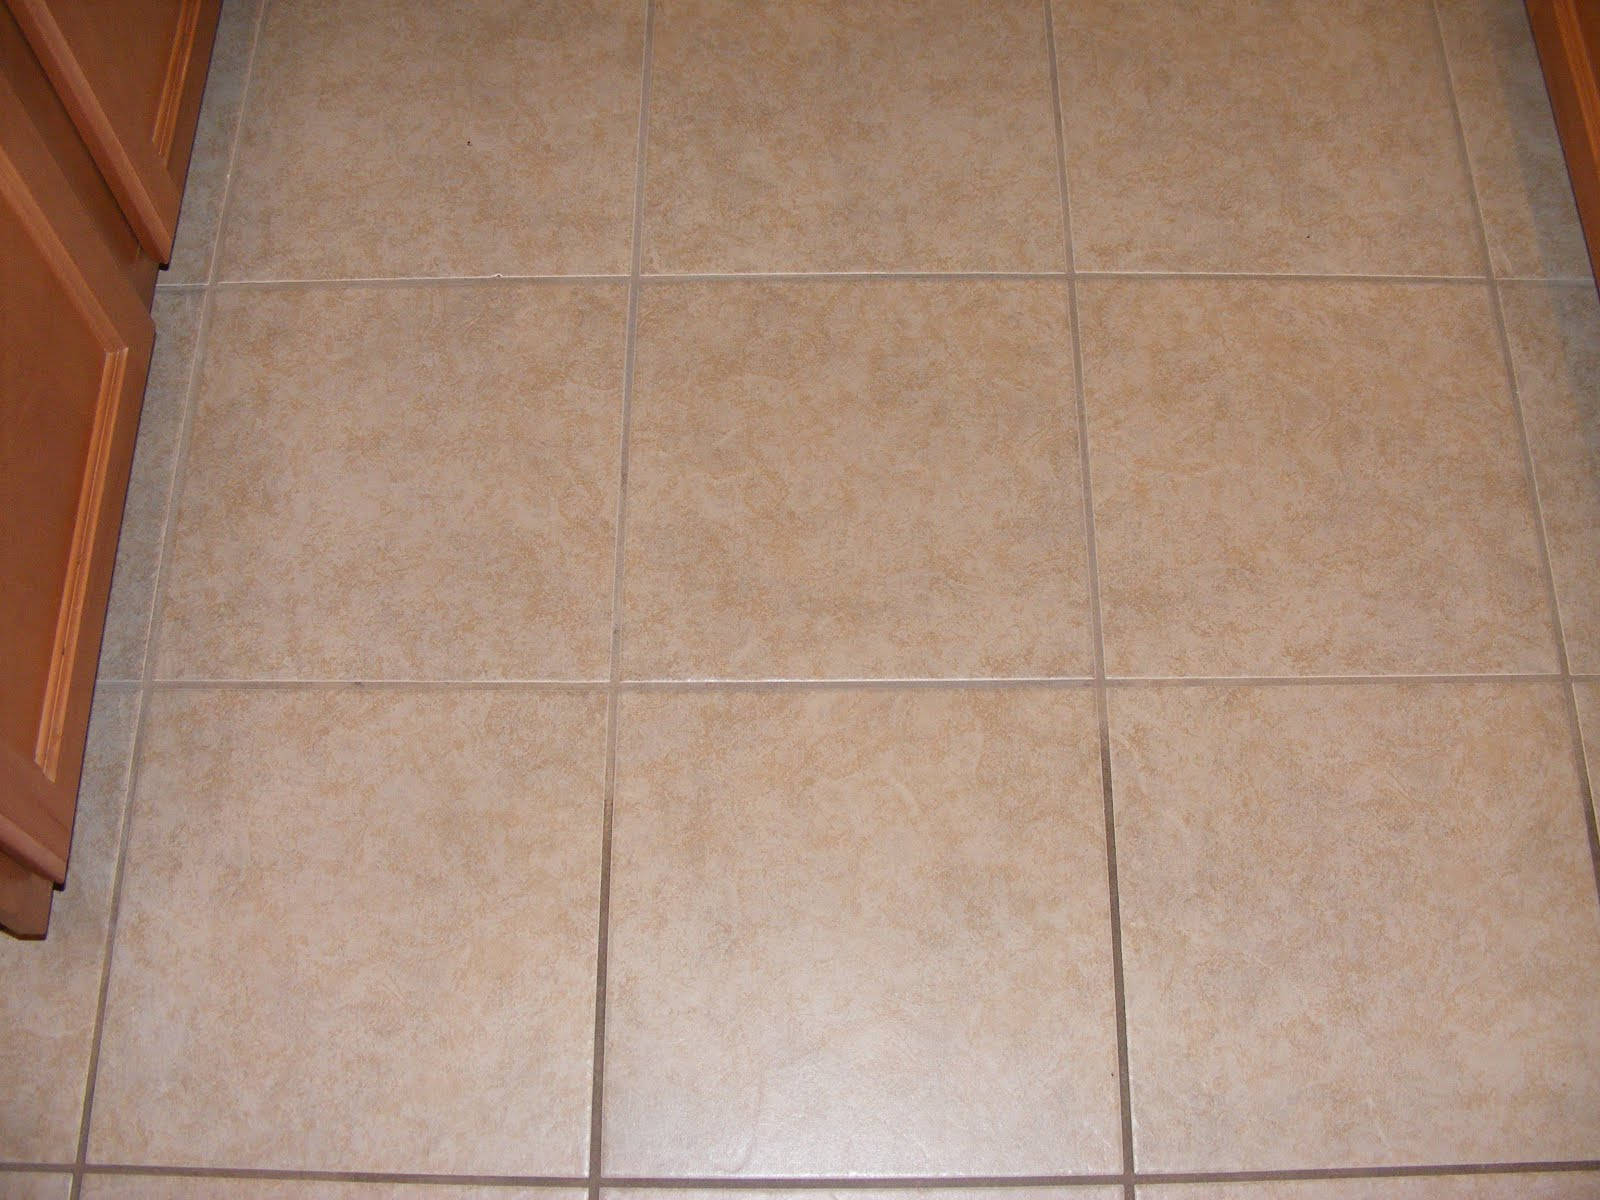 Amazing Grout Cleaner - Bathroom tiles cleaning products